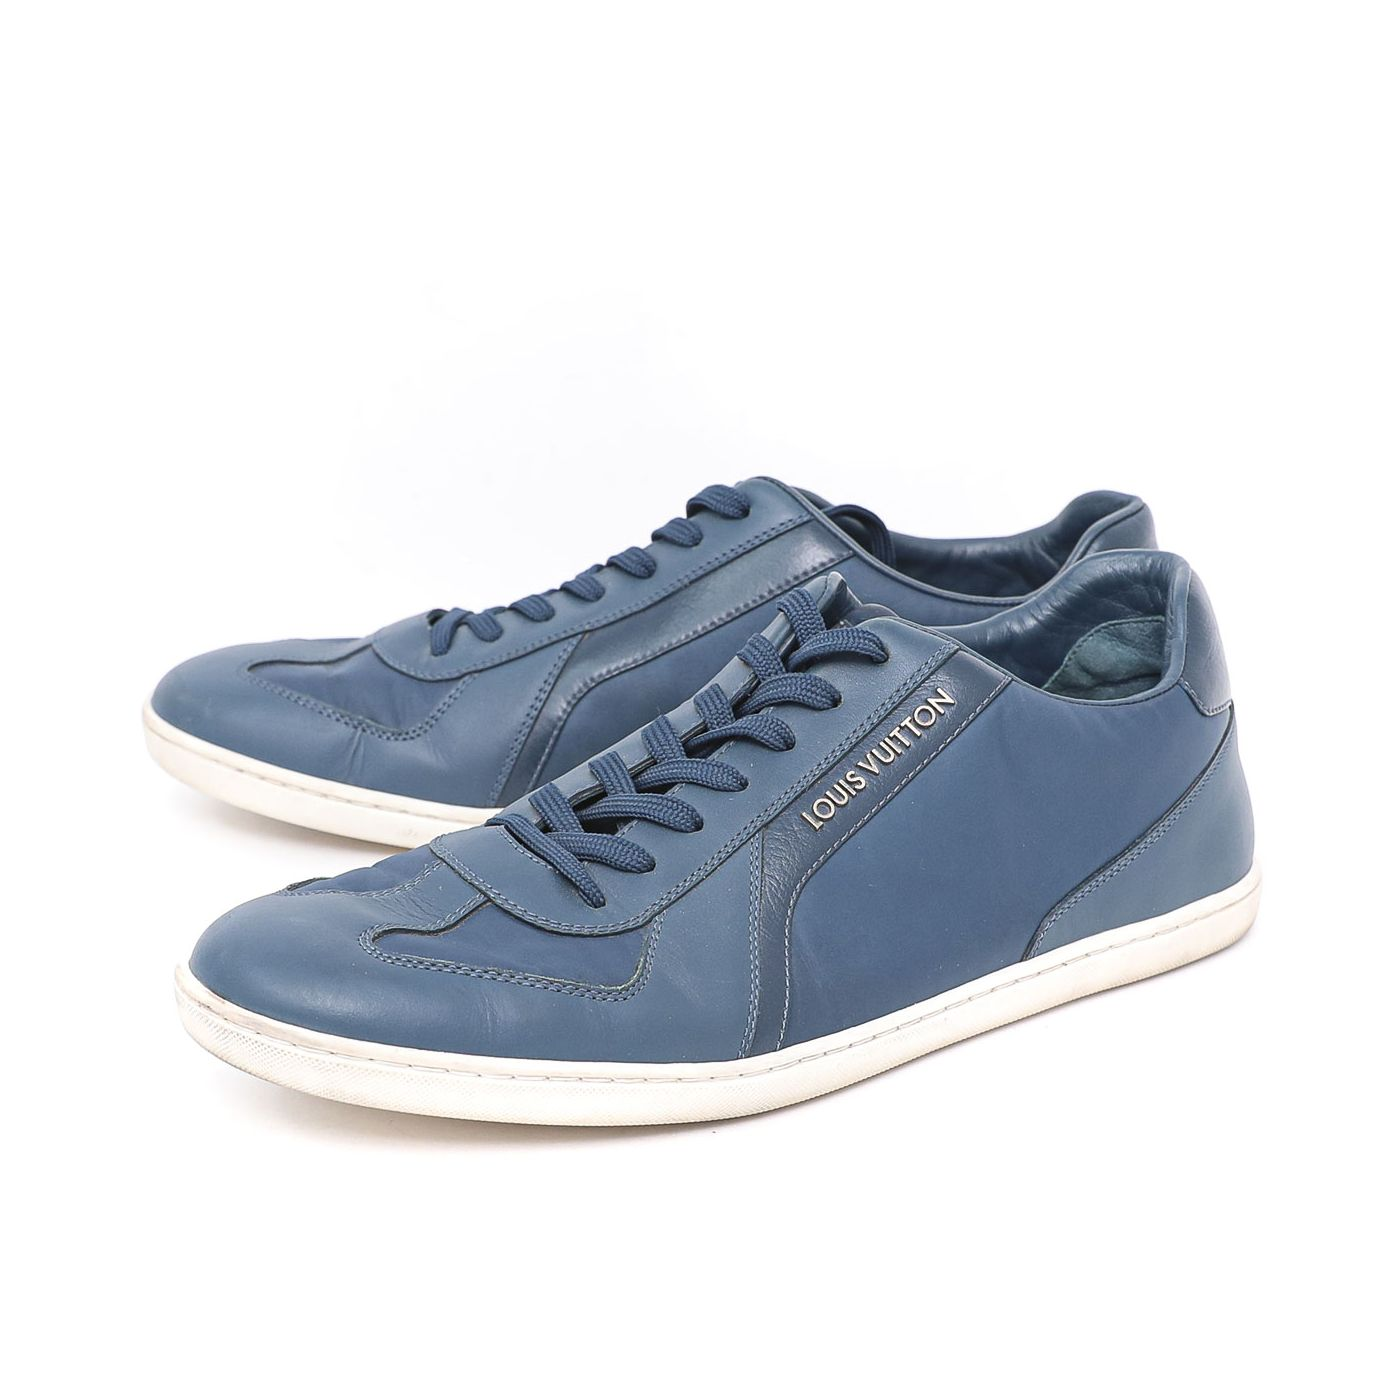 Louis Vuitton Blue Lace Up Sneakers 38